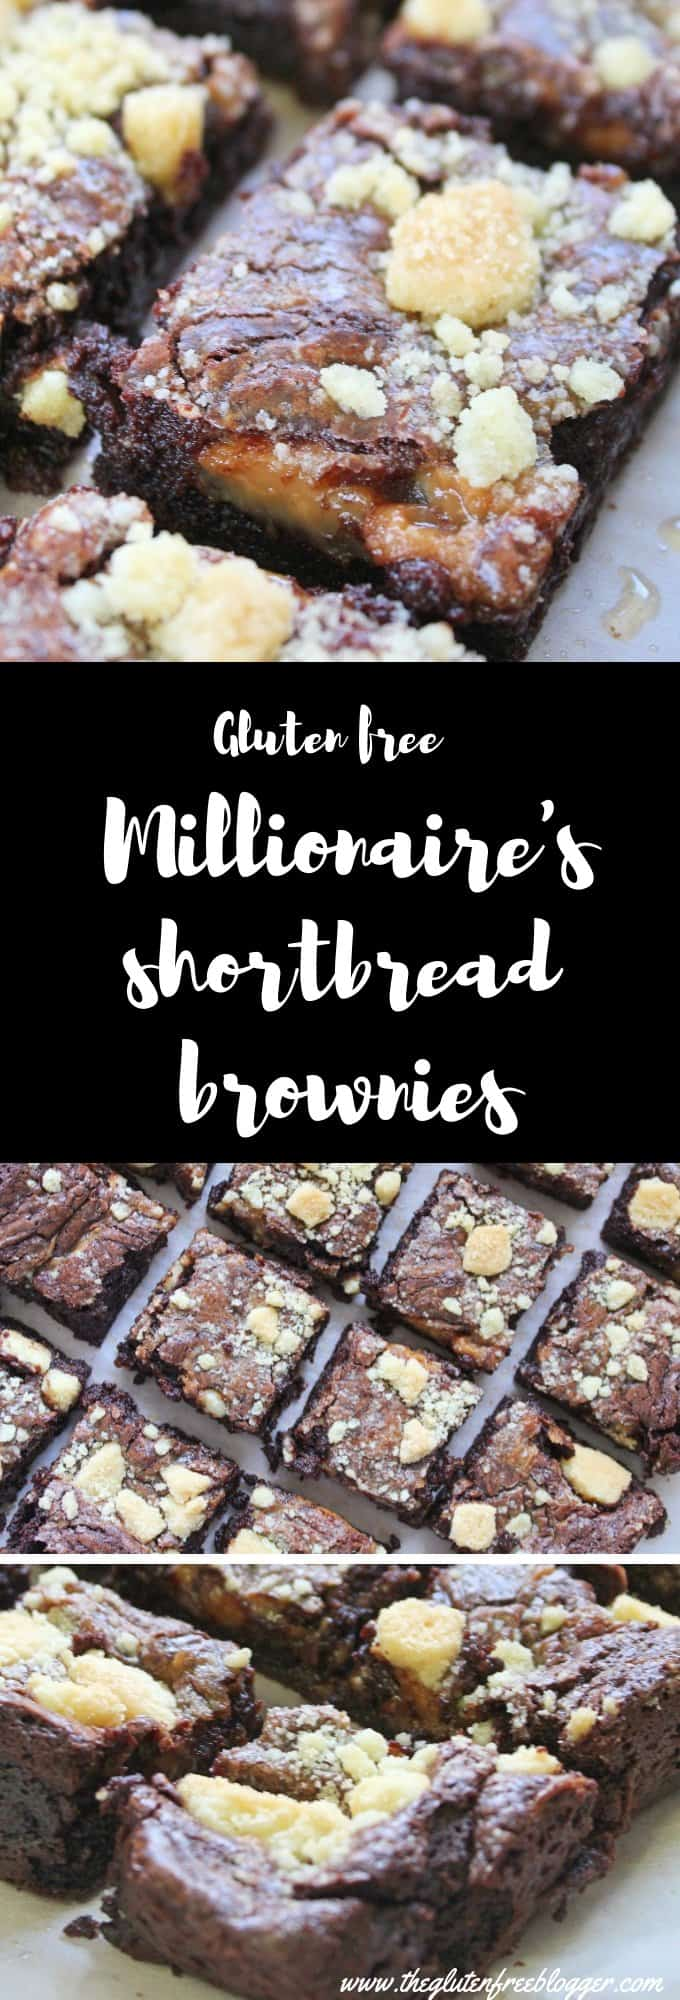 gluten free millionaire's shortbread brownies recipe - desserts - coeliac - easy fudgy brownies